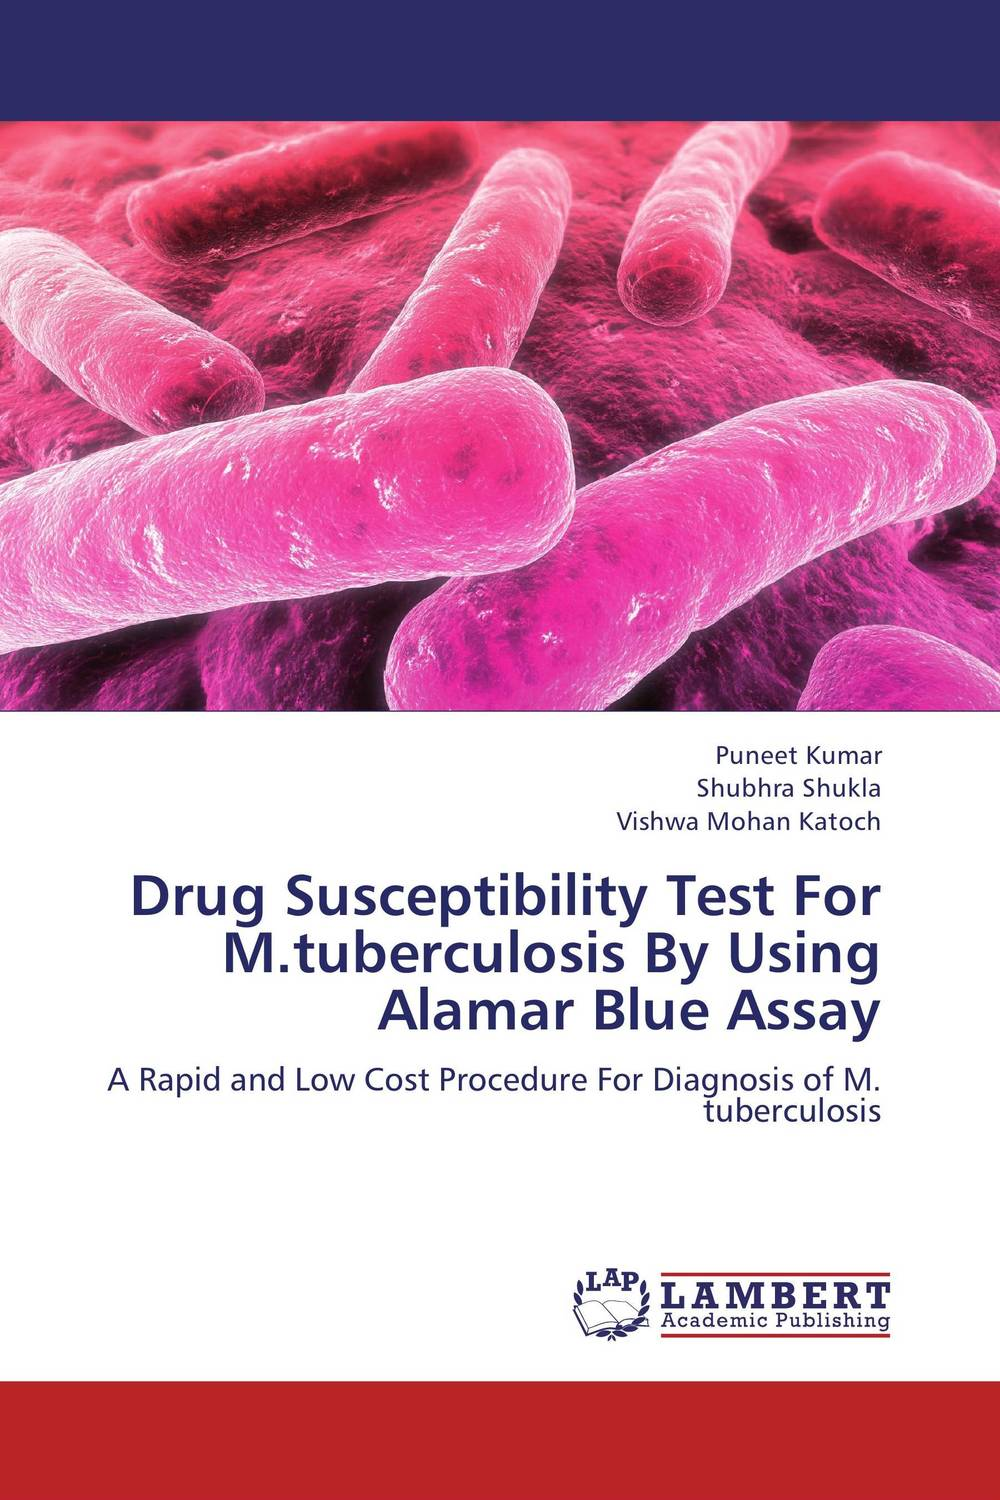 Drug Susceptibility Test For M.tuberculosis By Using Alamar Blue Assay